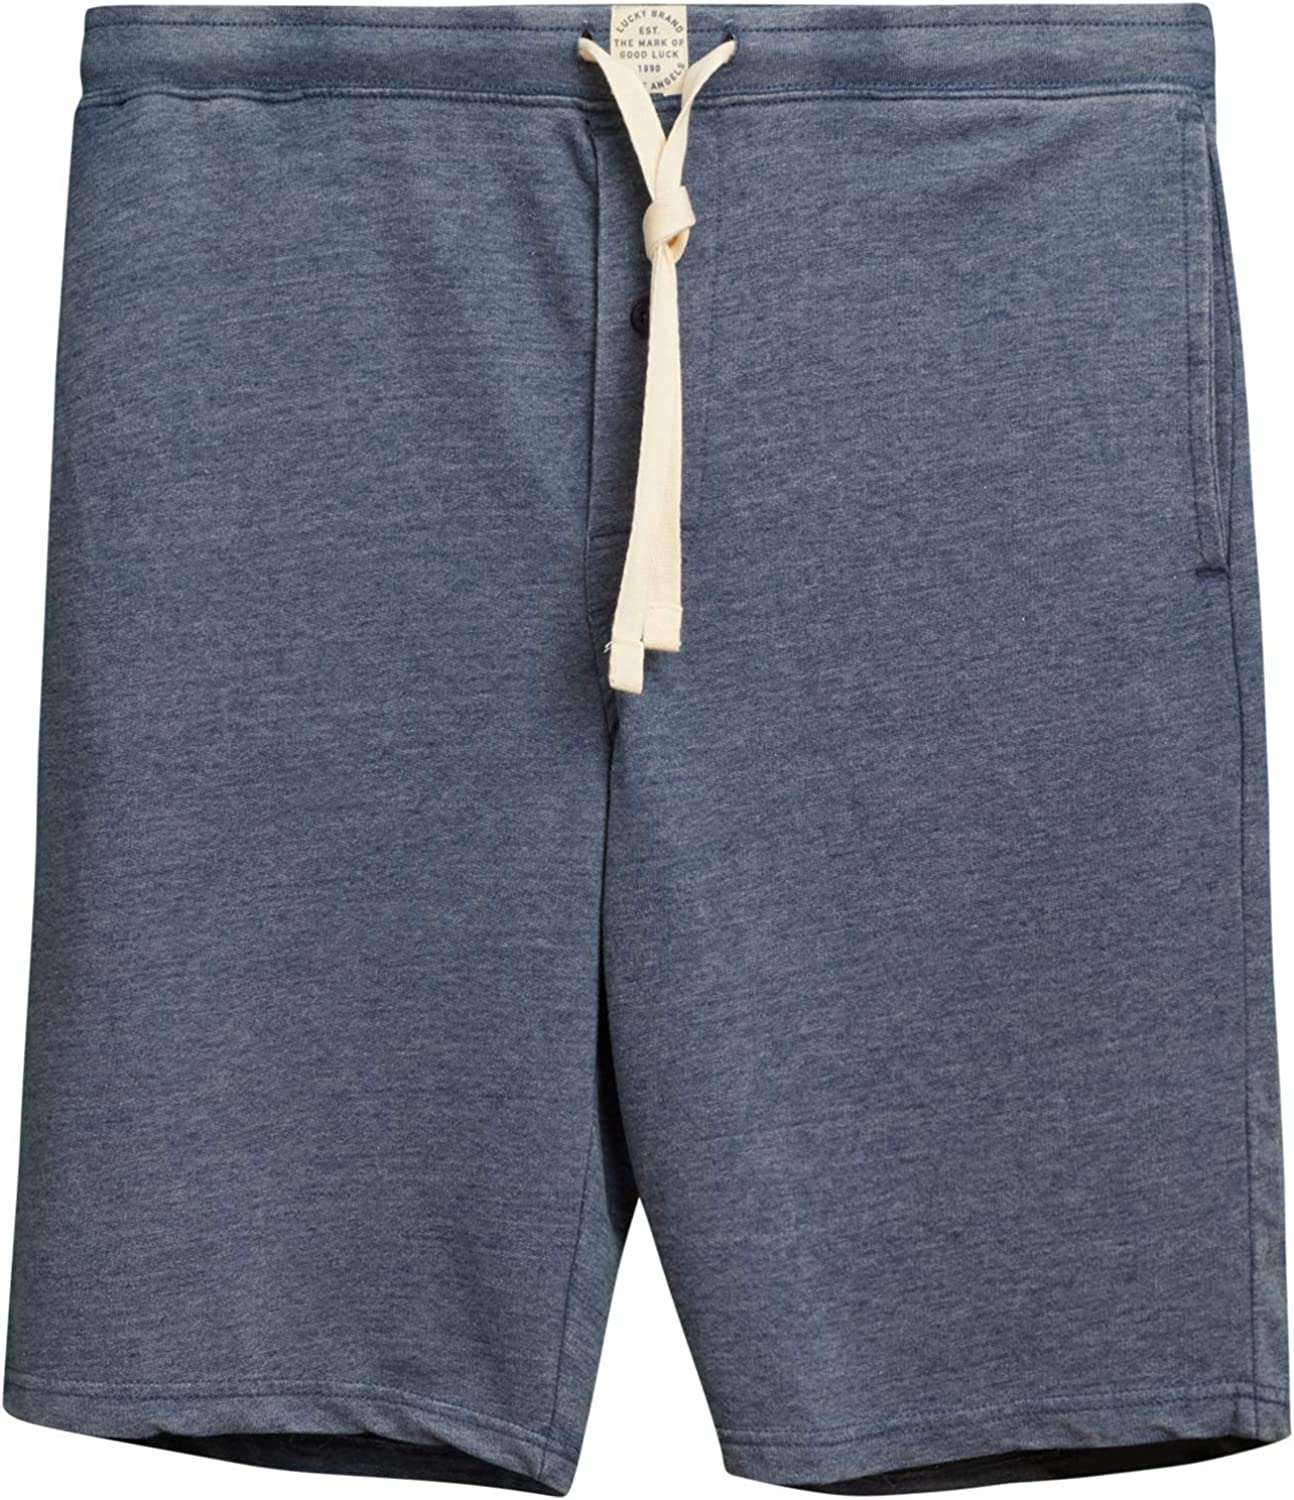 Lucky Brand Men's French Terry Knit Lounge Pajama Sleep Shorts